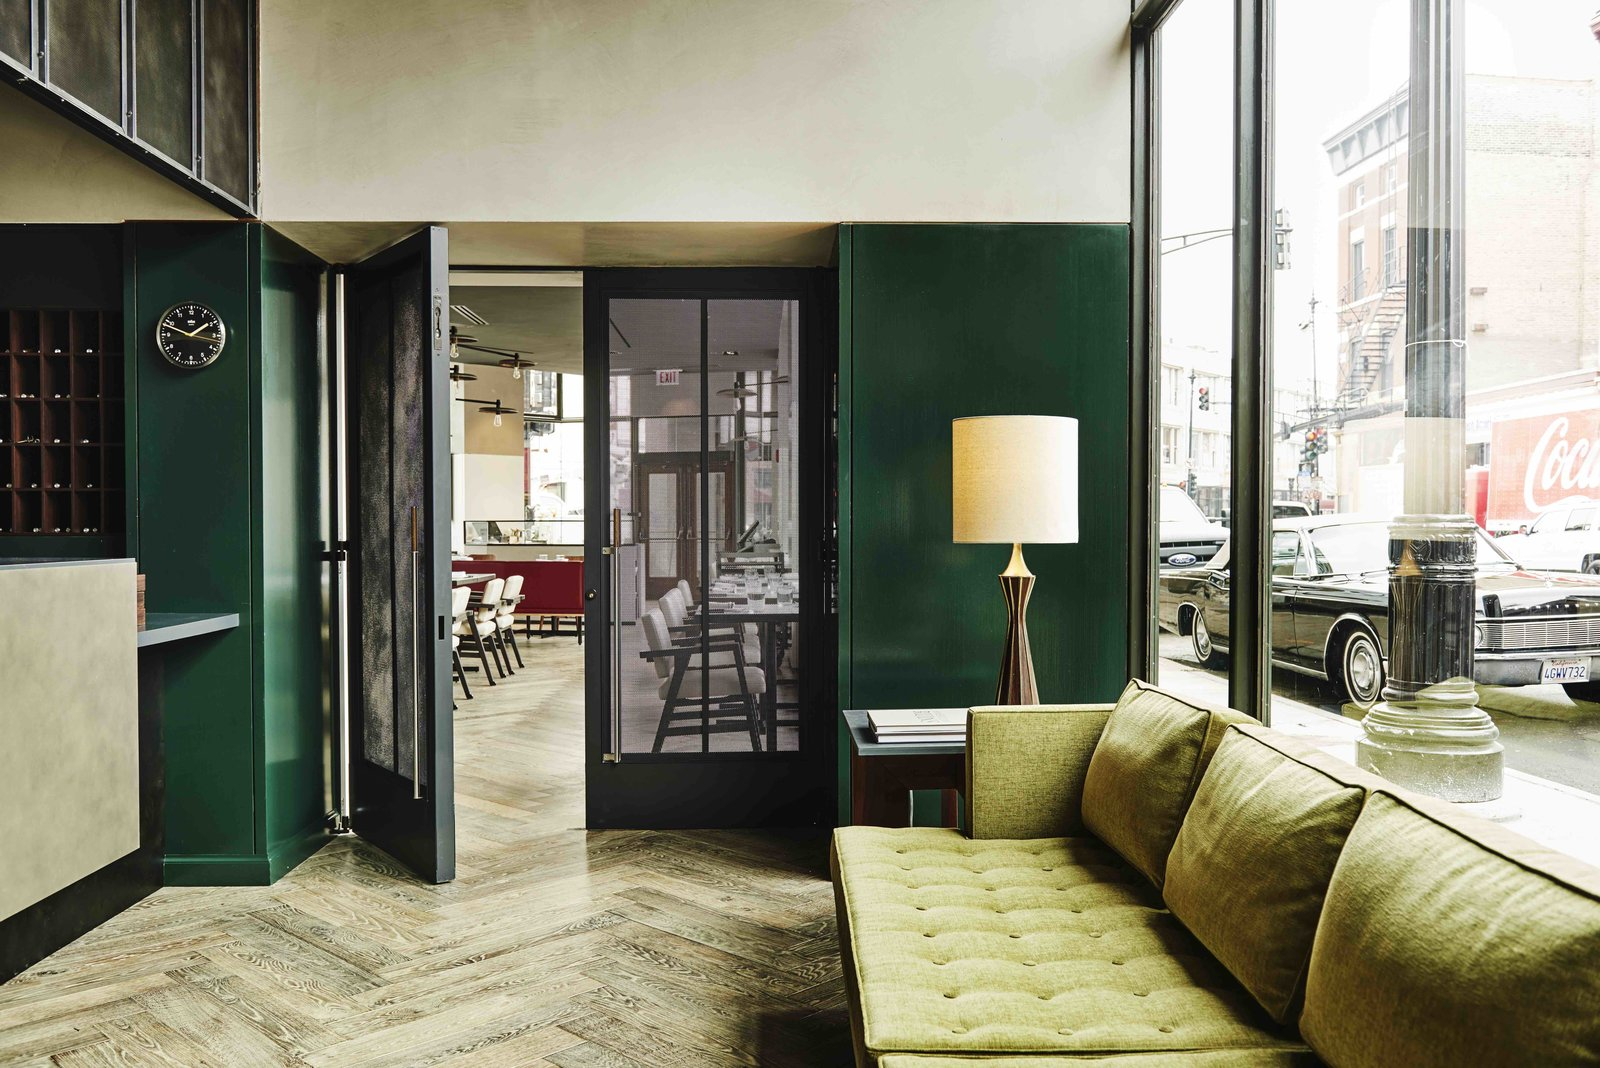 12 Modern Hotels In Historic Buildings Around The World